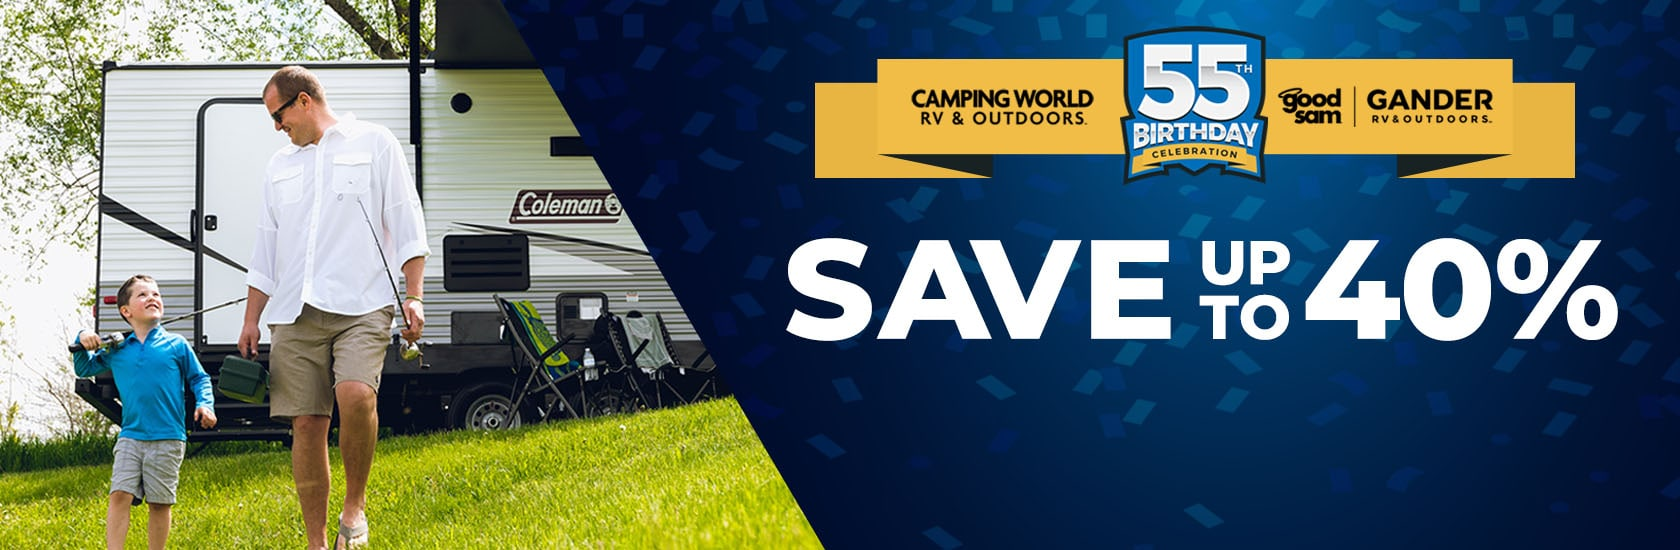 55th Birthday - Save up to 40% on outdoor gear & RV essentials